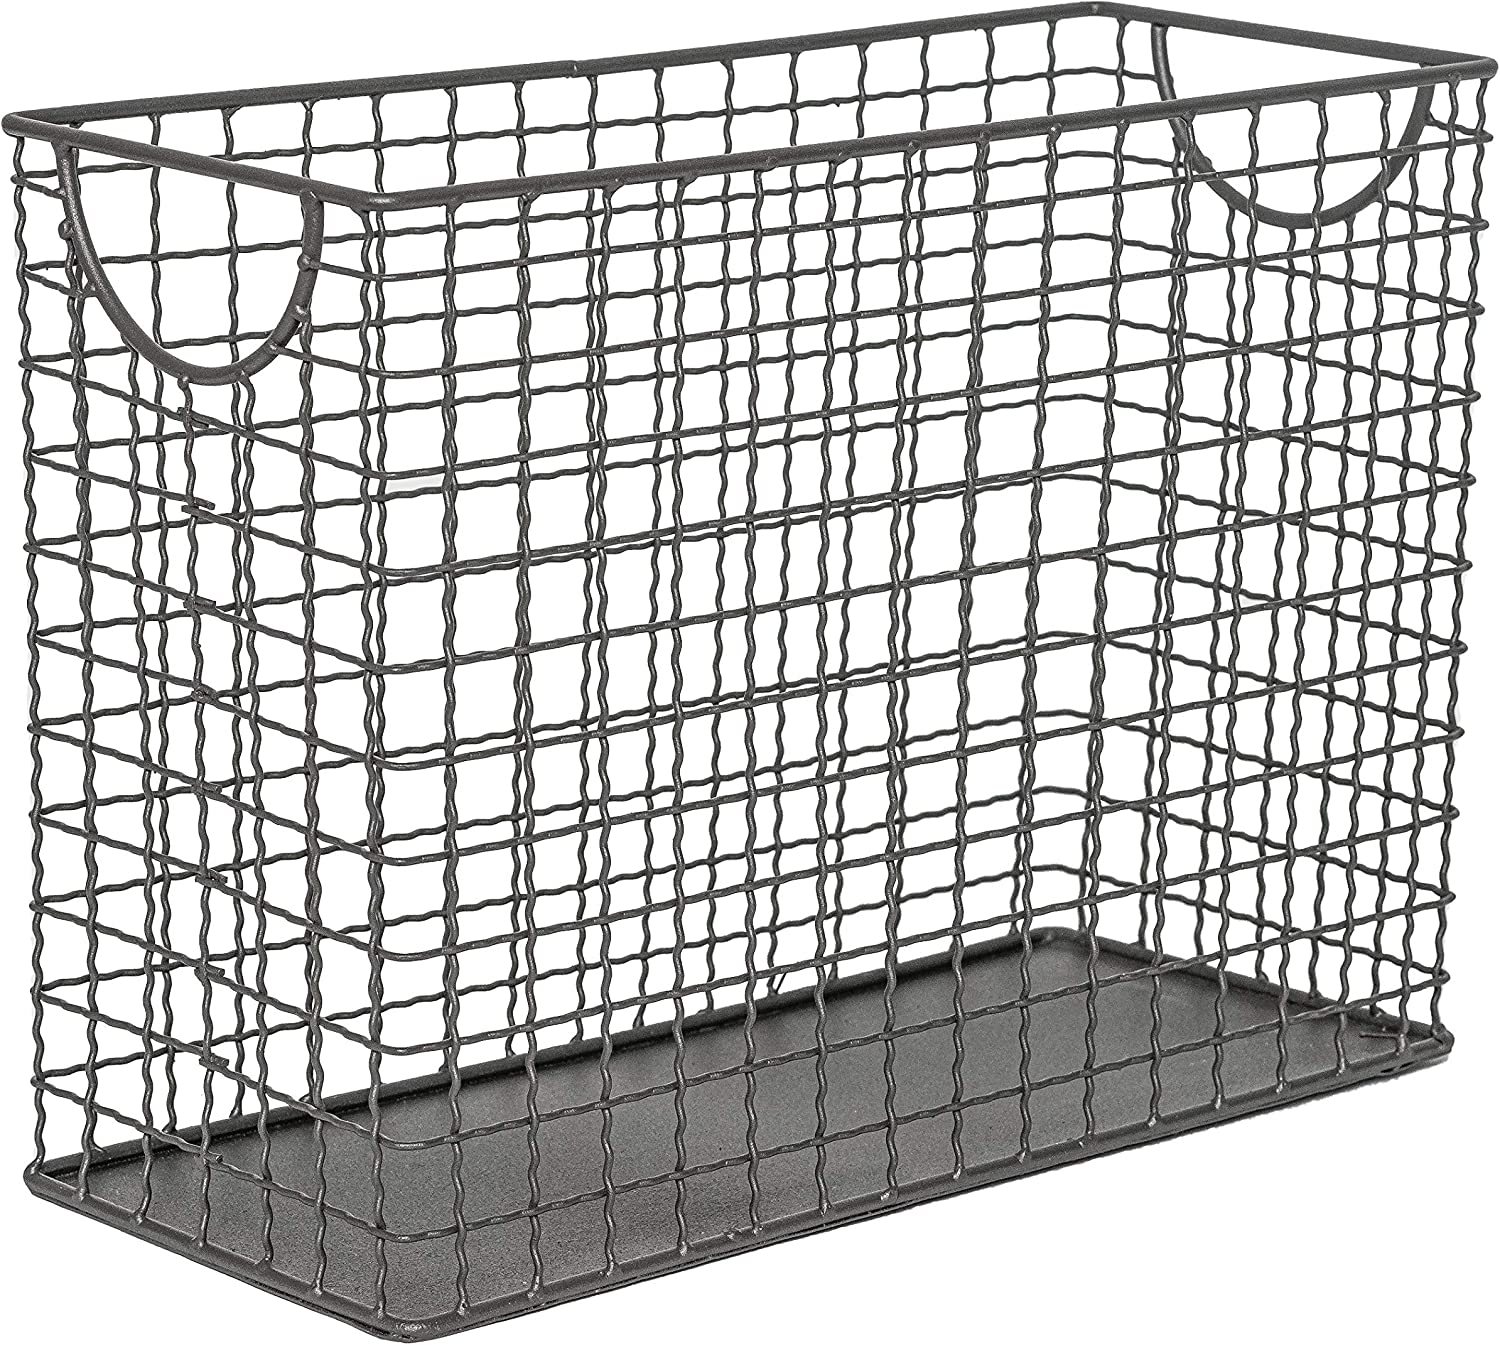 RGI Home Metal Bin Wired Storage Basket - Industrial Organizer Bin for Office and Workspace Made with Durable Steel Wire and Built in Handles (Gray)